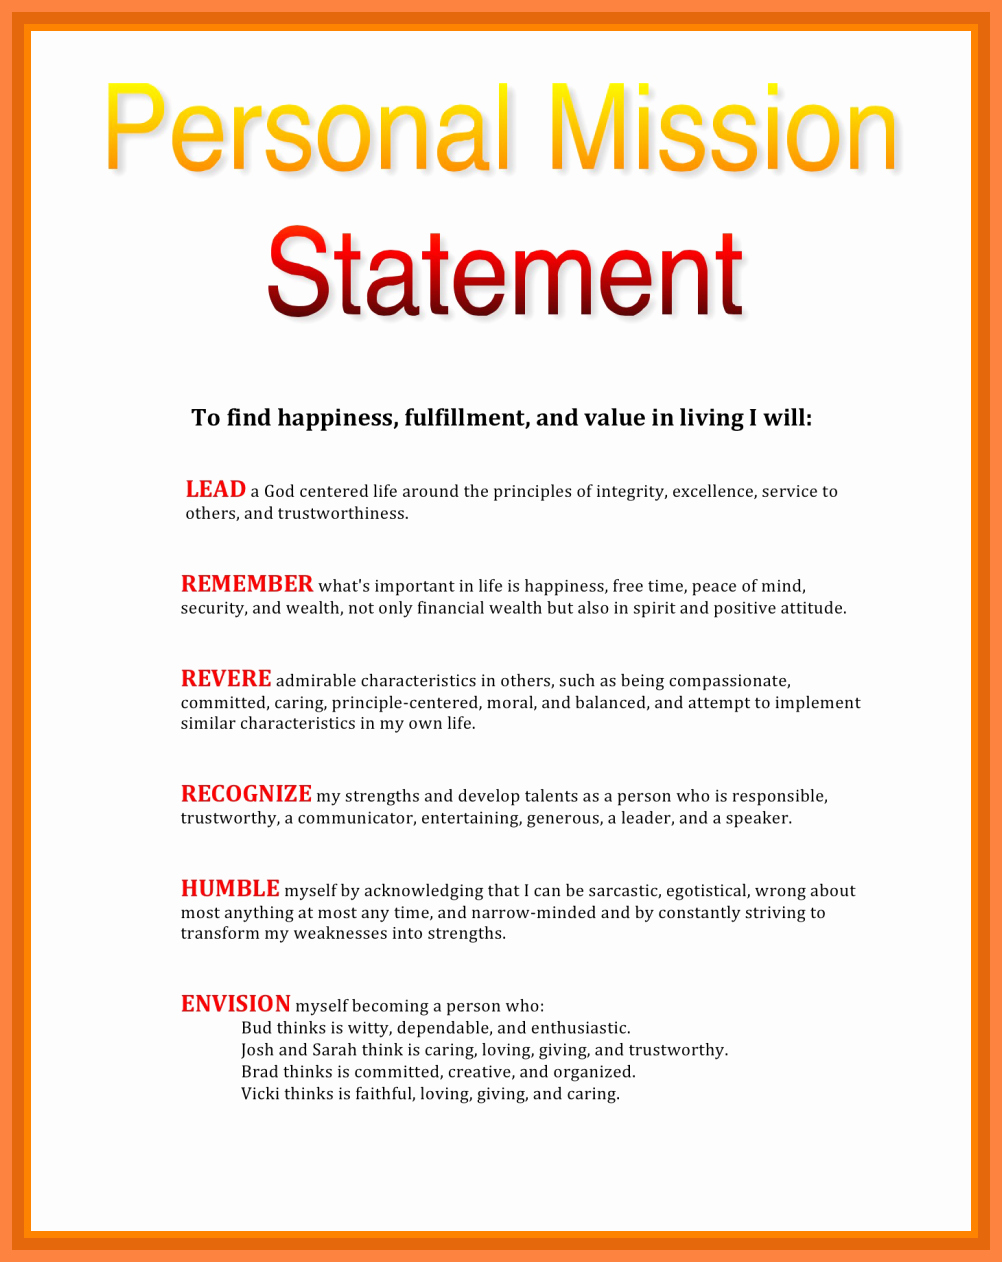 5 Personal Mission Statement Samples